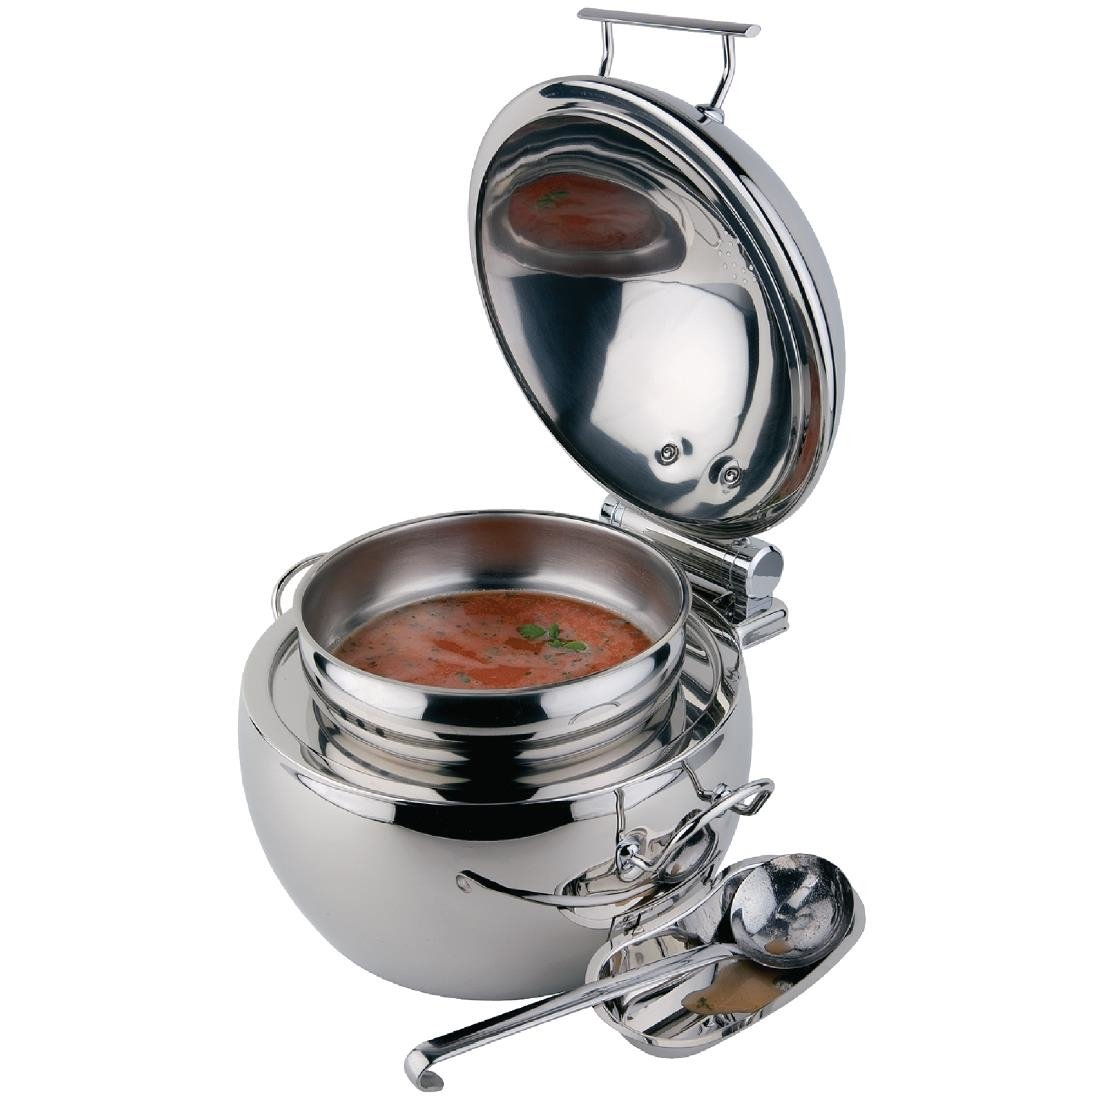 Image of APS Soup Chafing Dish